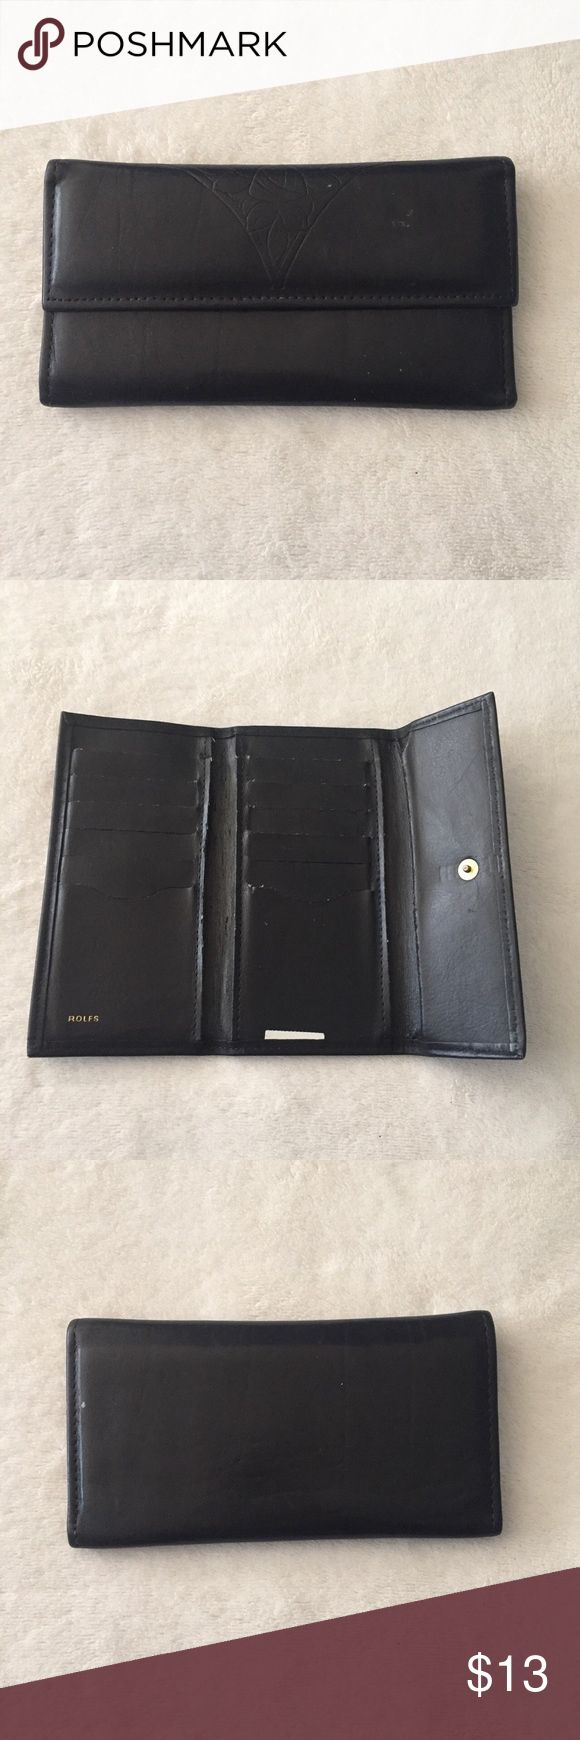 Vintage black leather ROLFS wallet In great condition Rolfs Bags Wallets